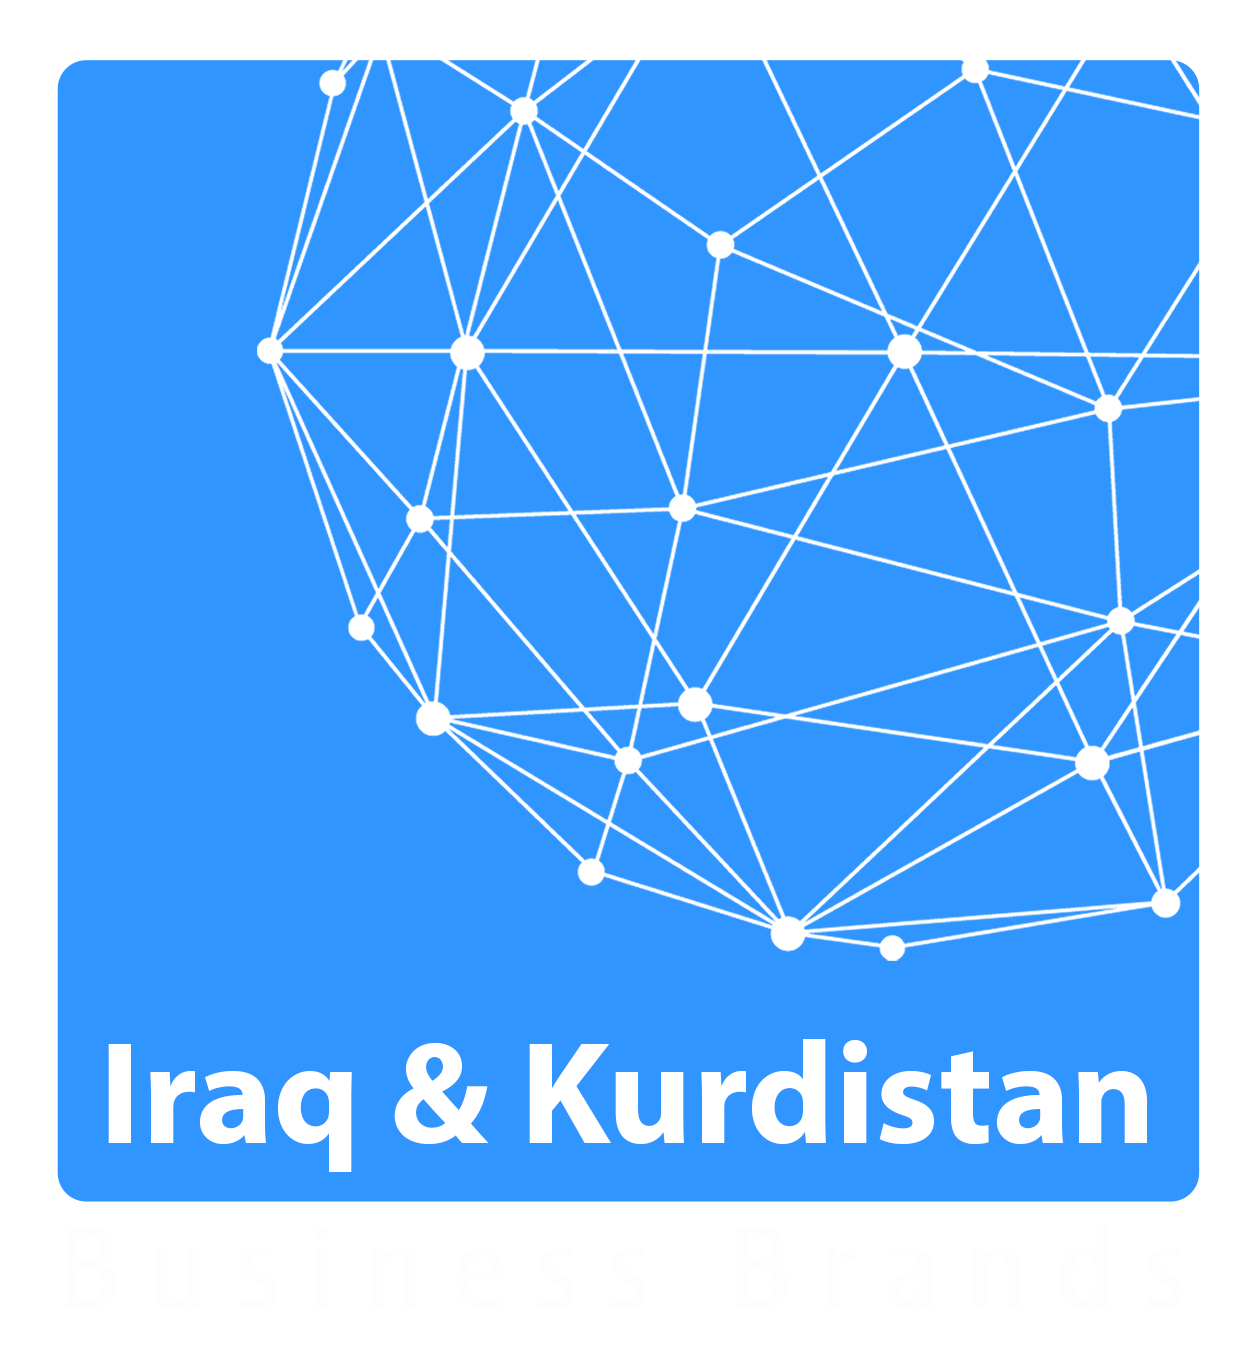 Iraq & kurdistan brands – Just another WordPress site